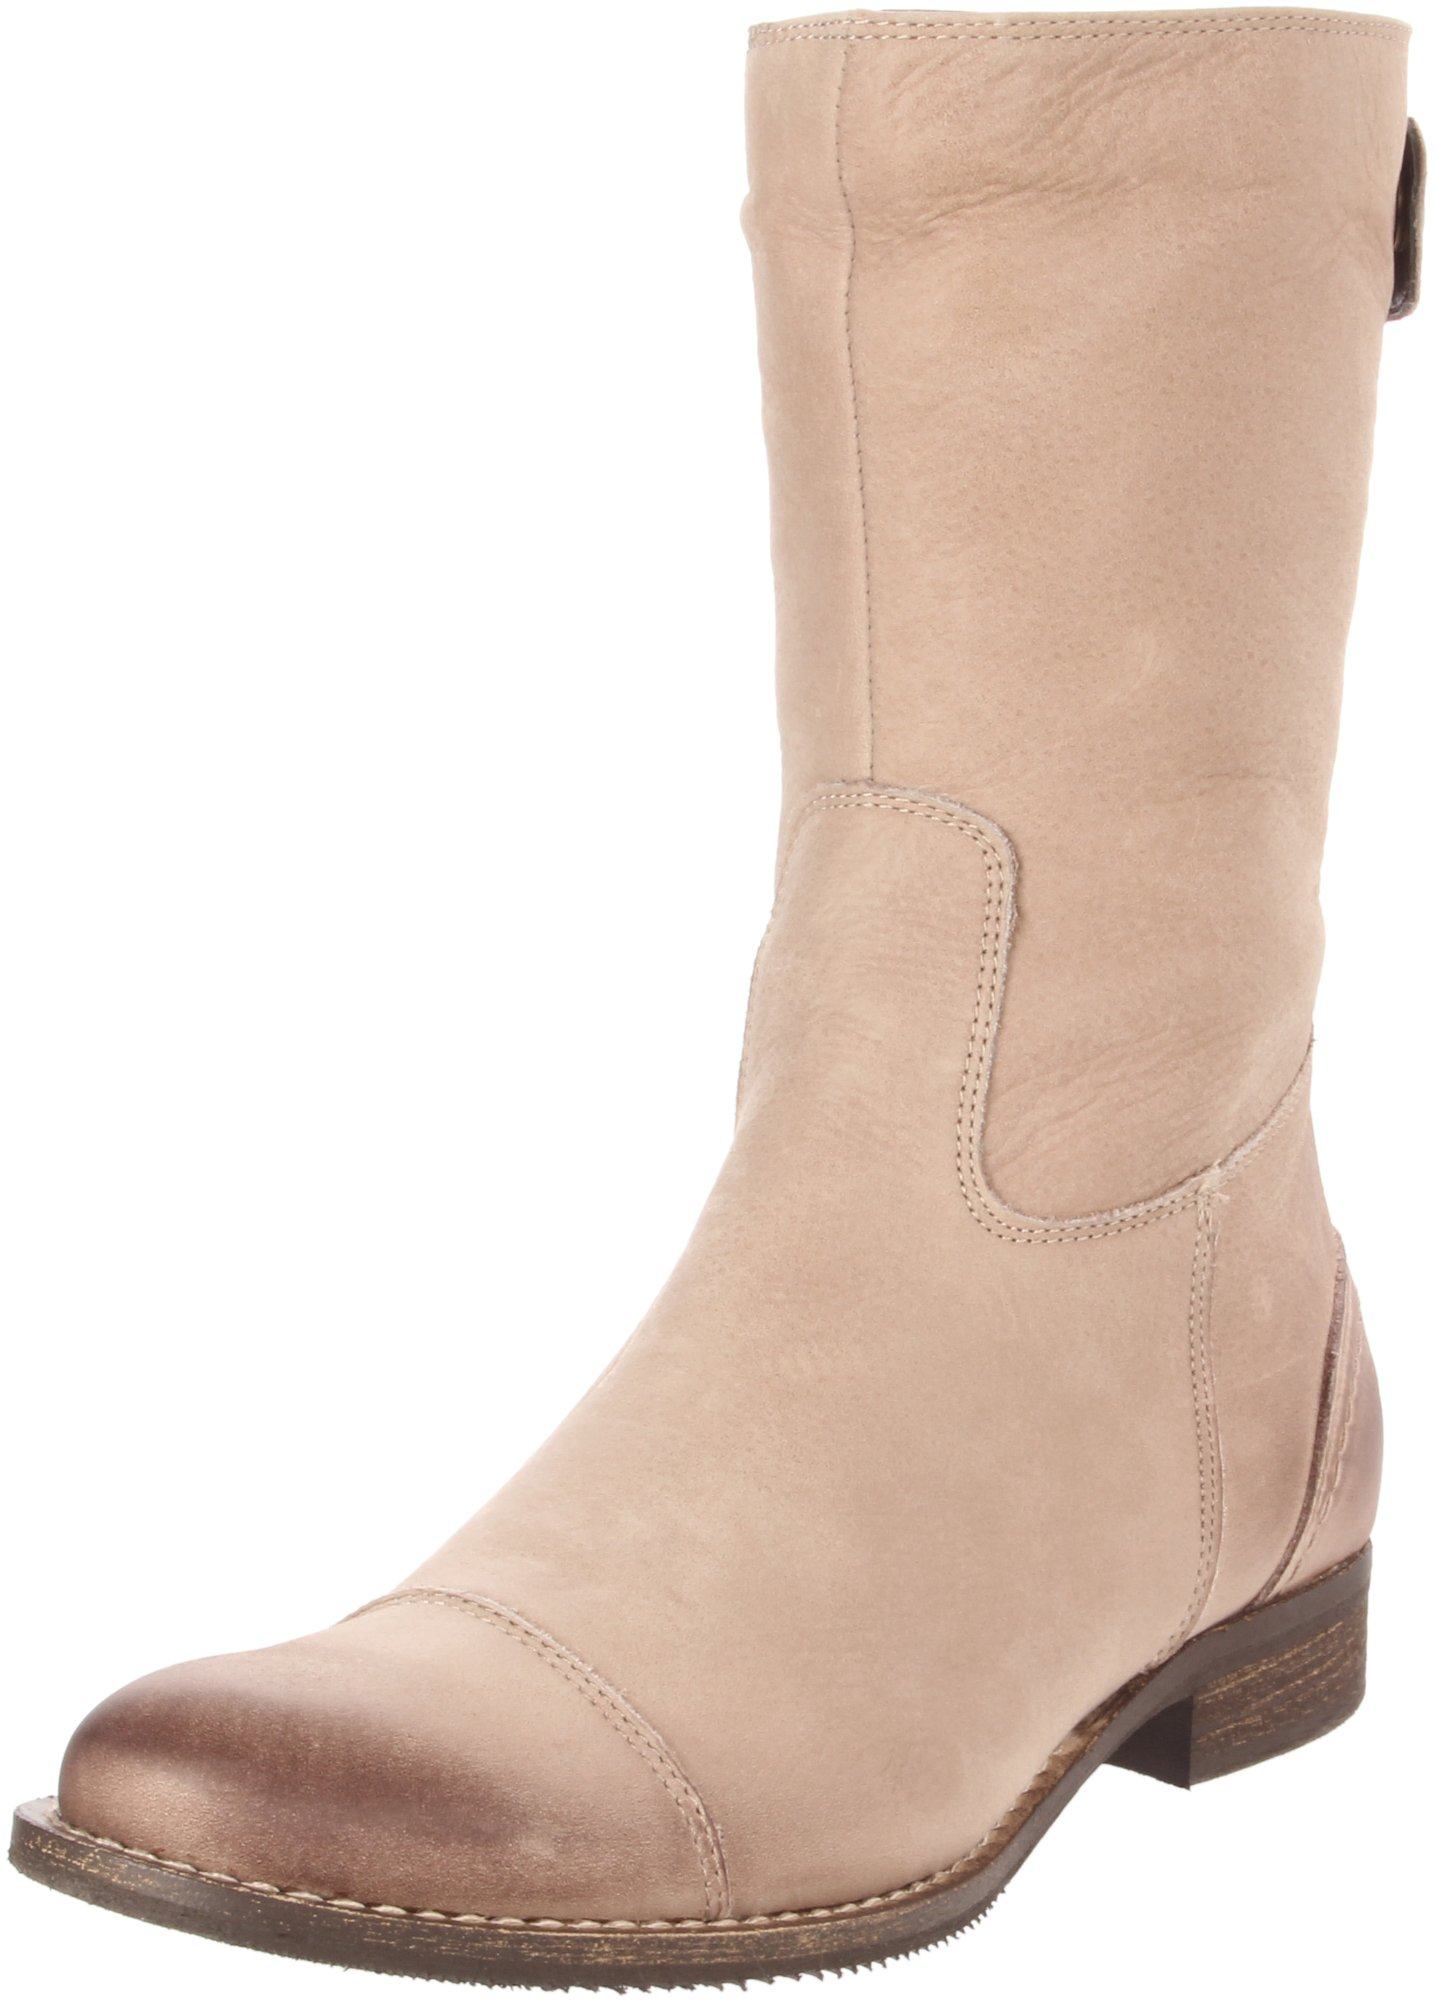 ILSE JACOBSEN Women's Travel 13 Ankle Boot,Sand,36 EU/6 M US